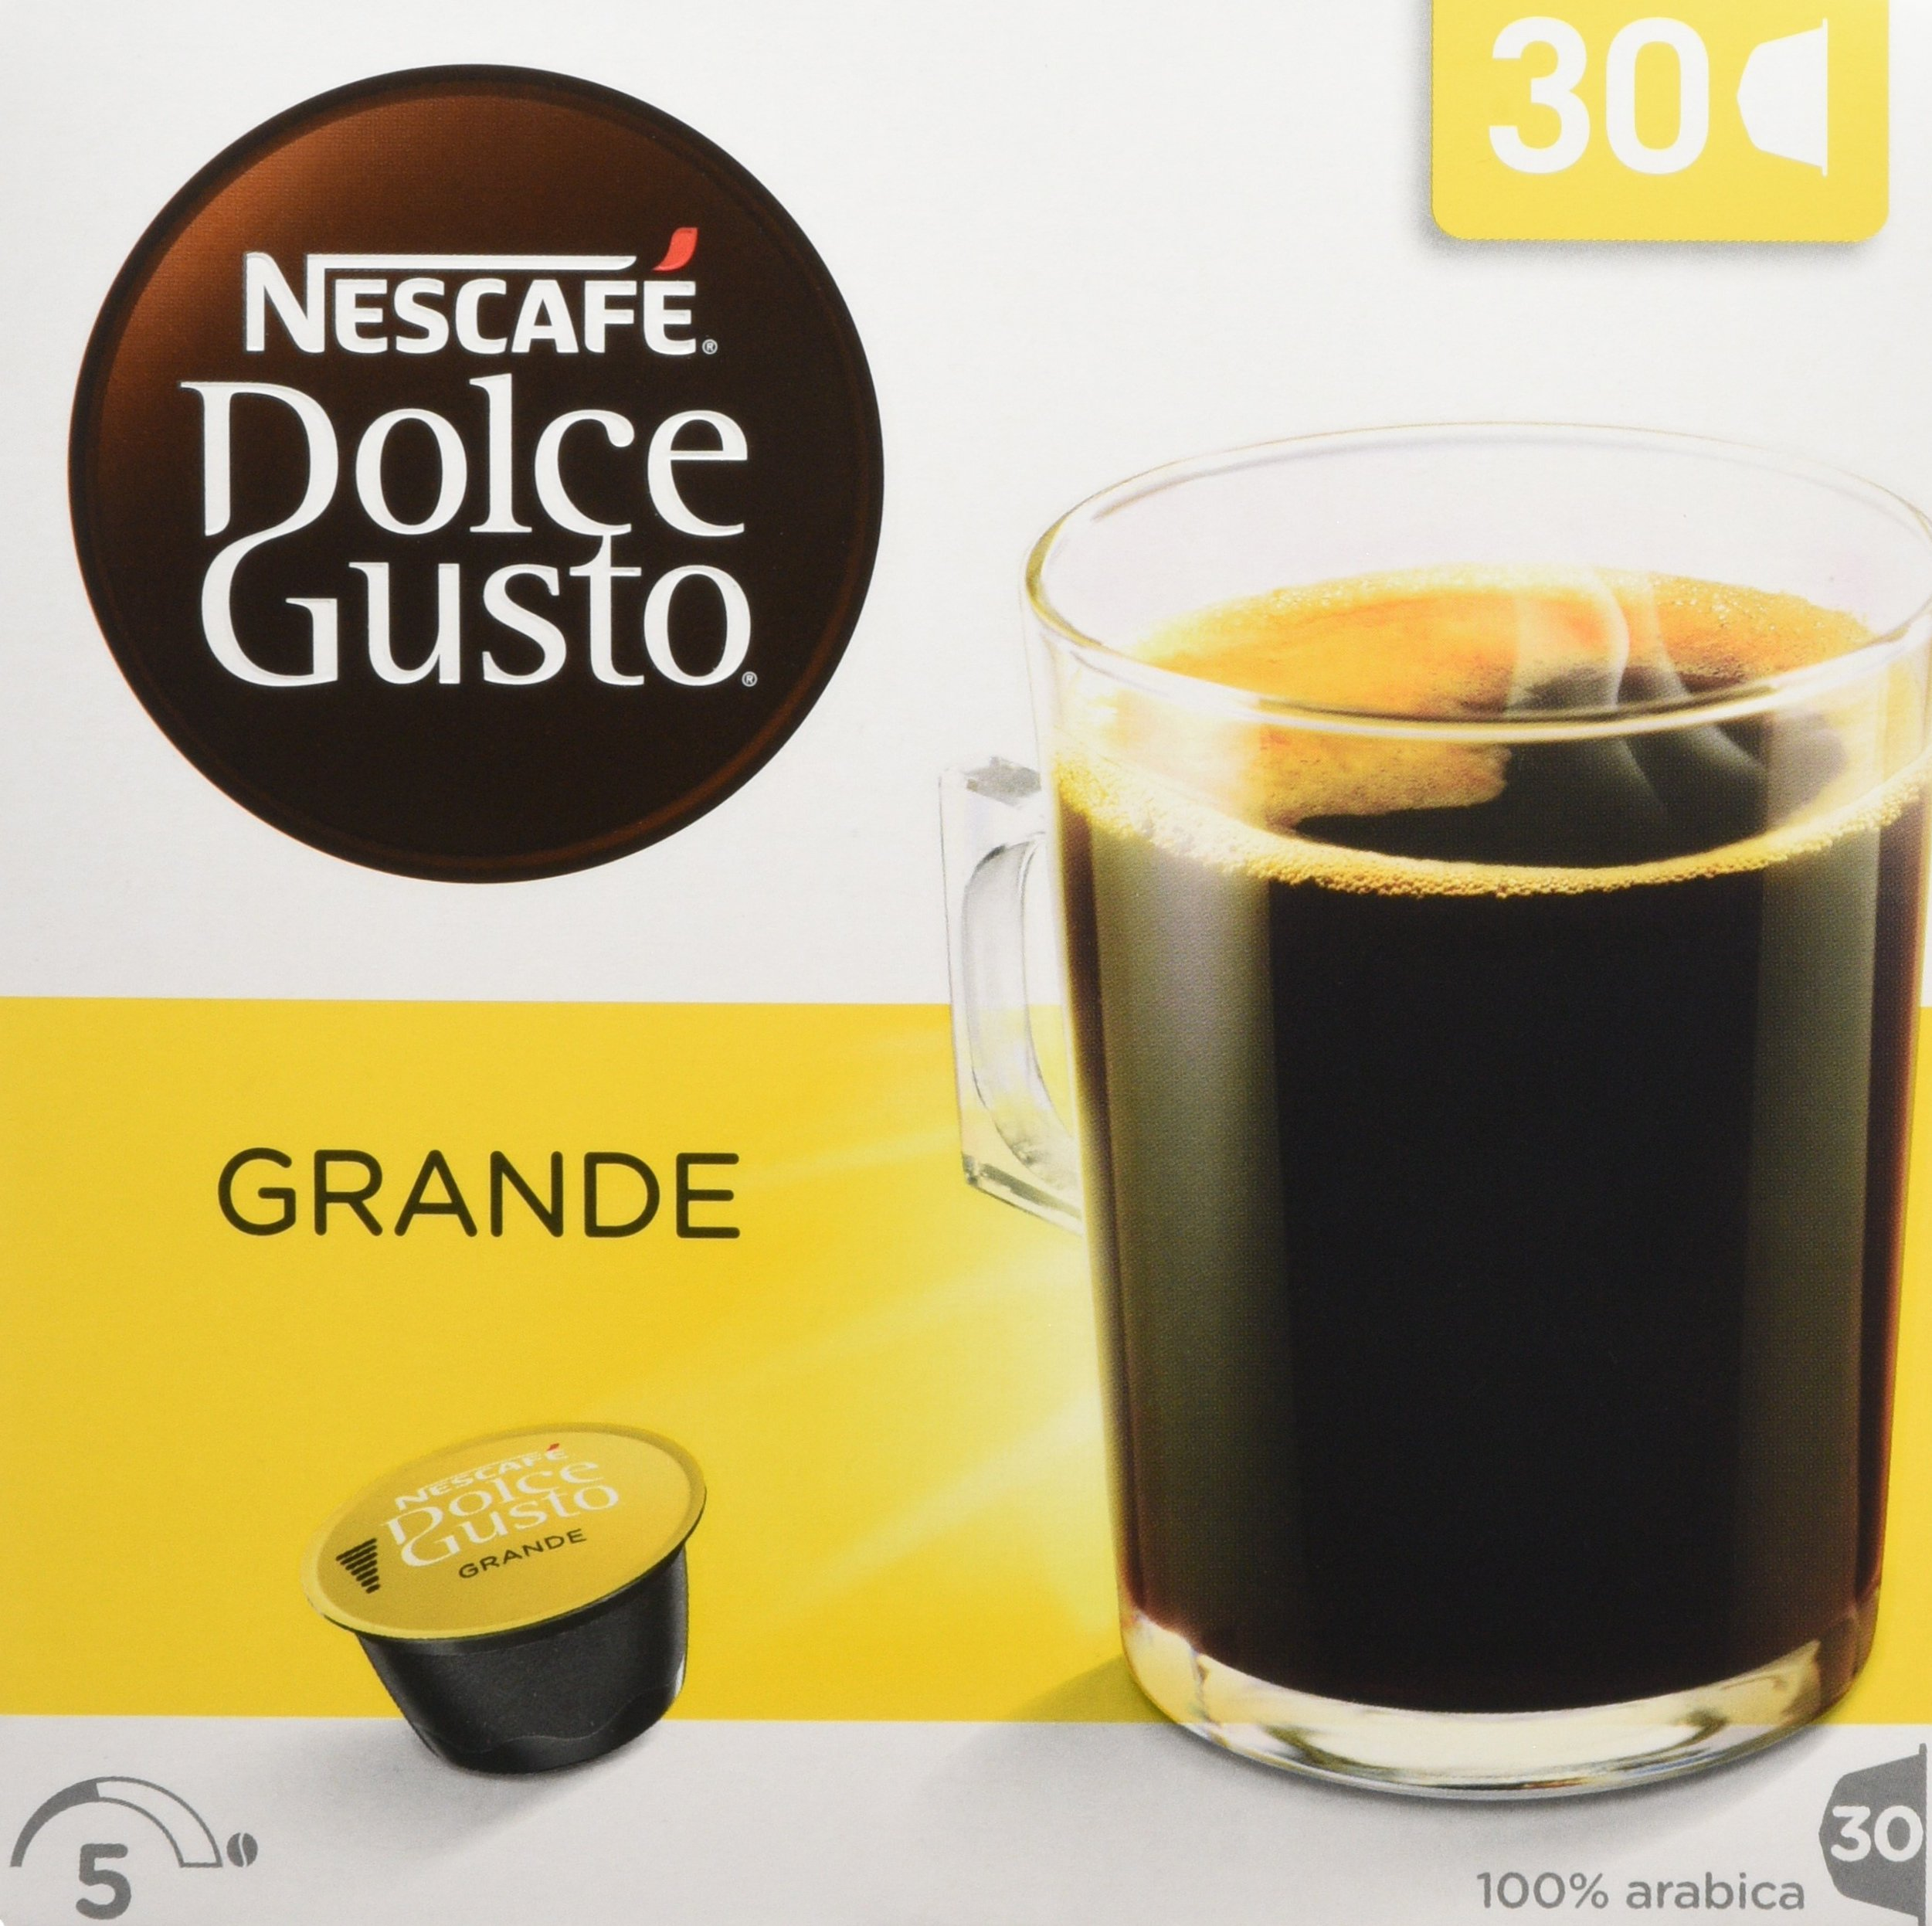 Nescafé Dolce Gusto Lungo coffee pods and capsules (a citrus fruit coffee with aromas of dried fruit and citrus fruit)